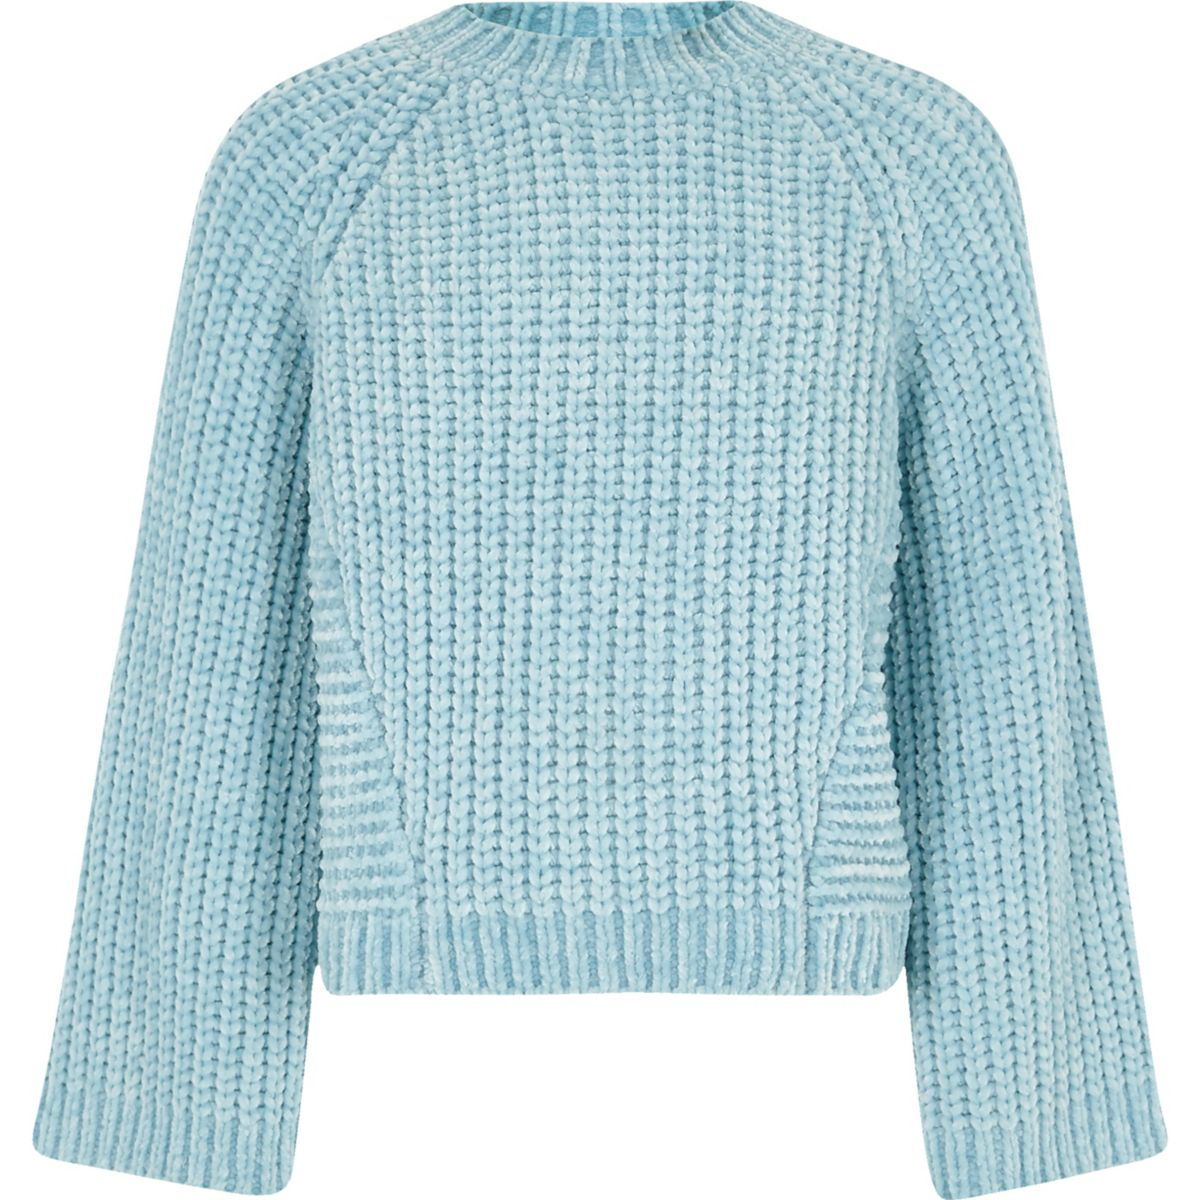 Girls blue chenille knit sweater